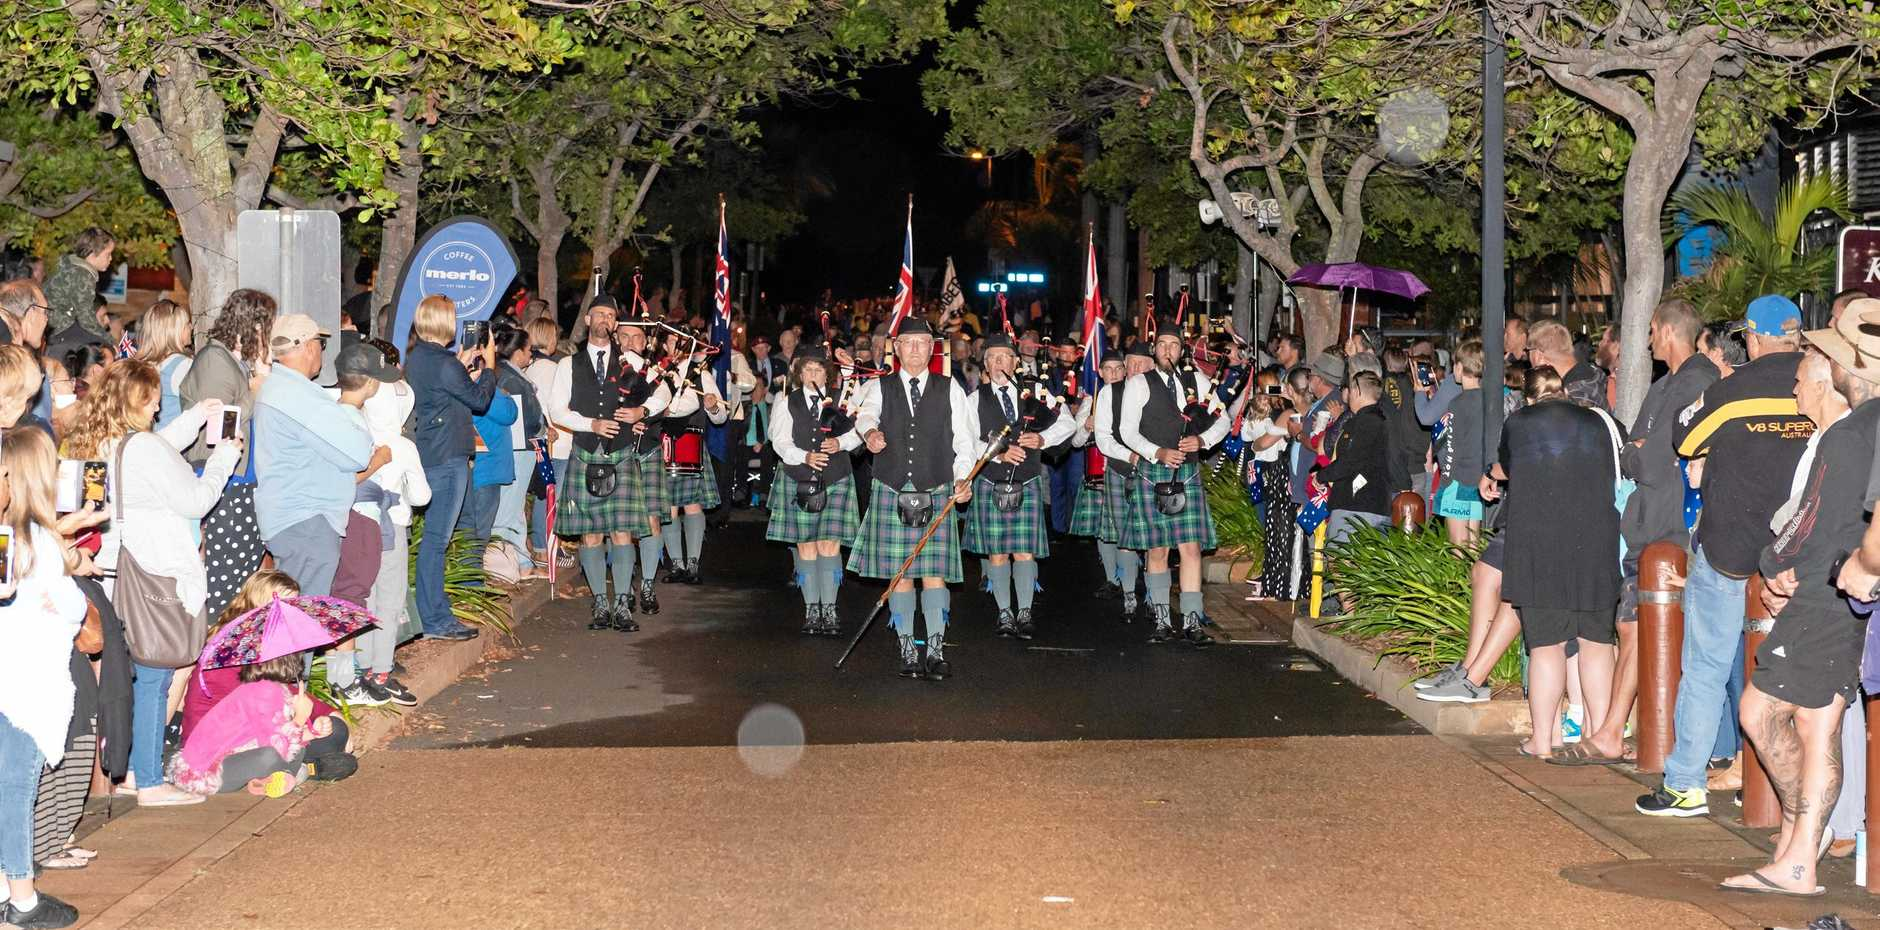 The parade marches into position for the Bargara dawn service.